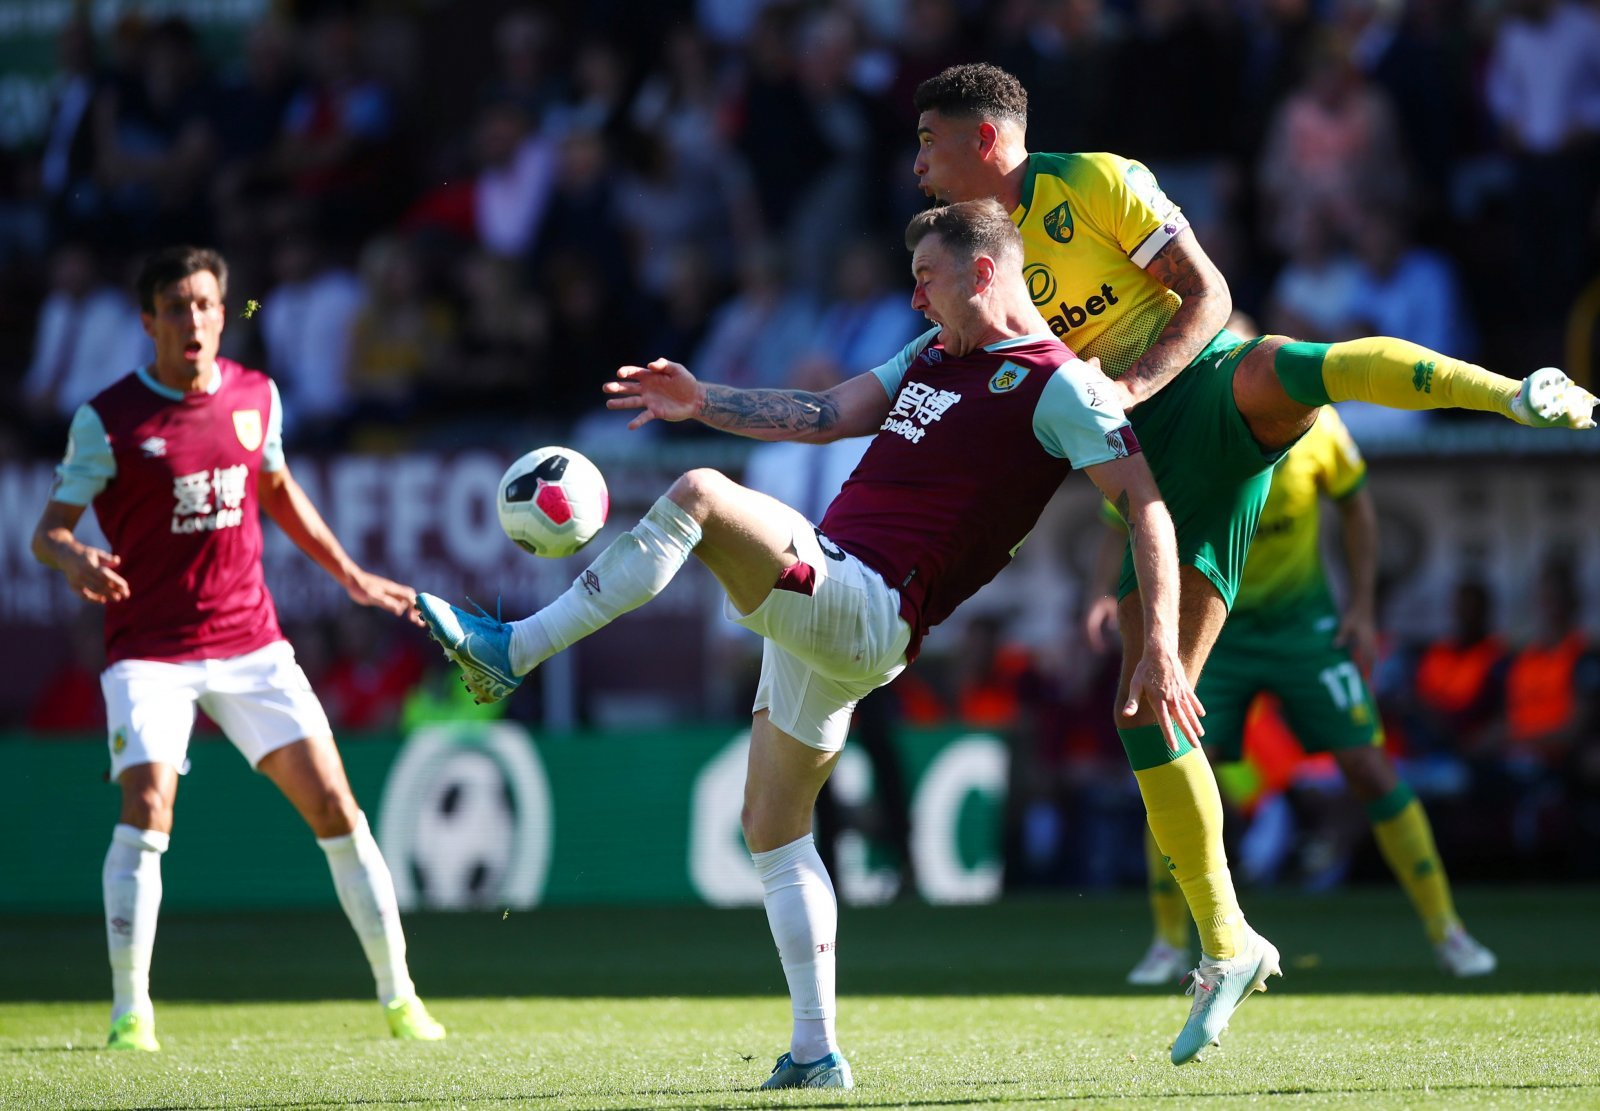 Norwich City: Fans support Ben Godfrey after second consecutive 2-0 loss